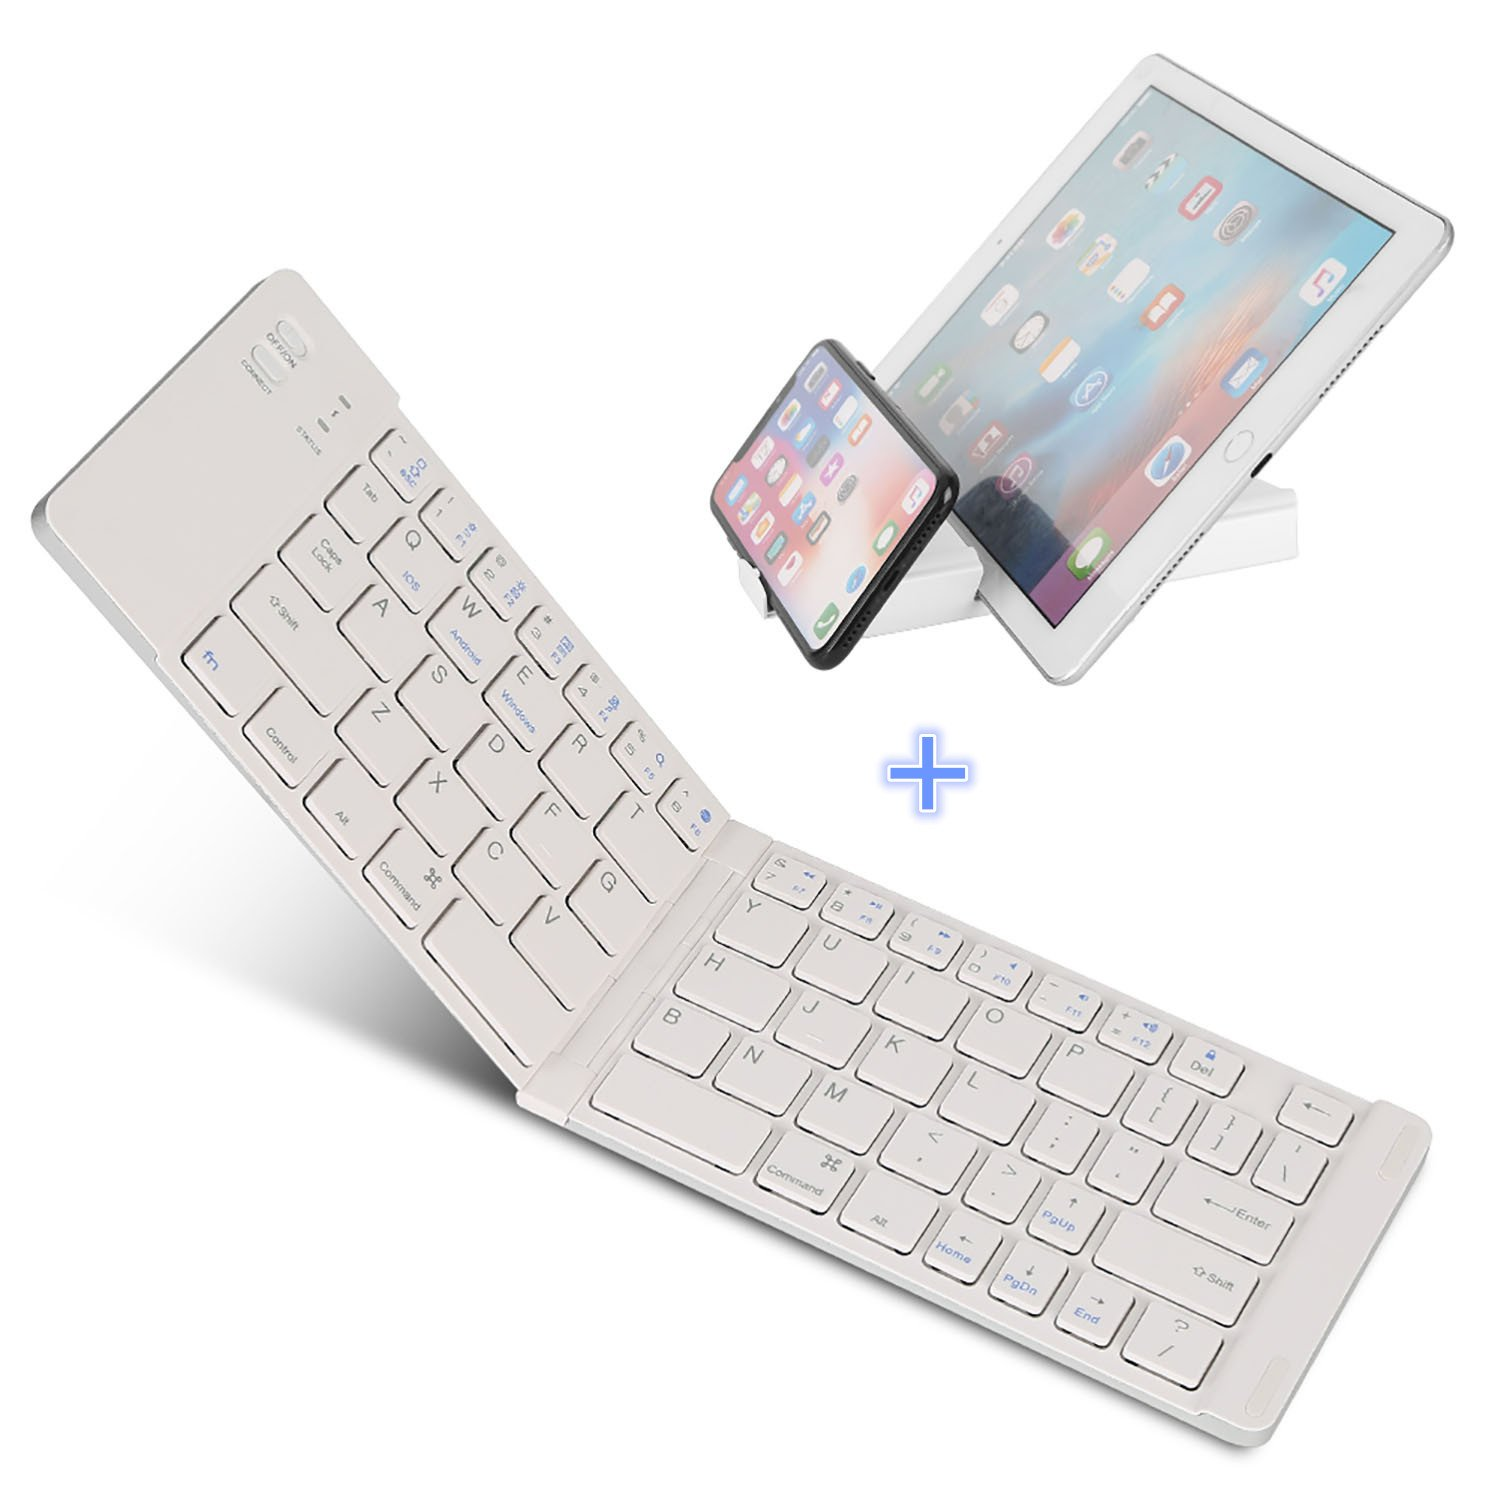 Bluetooth Folding Keyboard, IKOS Ultra Slim Pocket Size Foldable Keyboard For iOS/Android / Windows, iPad Mini, iPad Pro, iPhone, Smartphones, Windows, Smart TV, Tablets, With Rechargable Battery